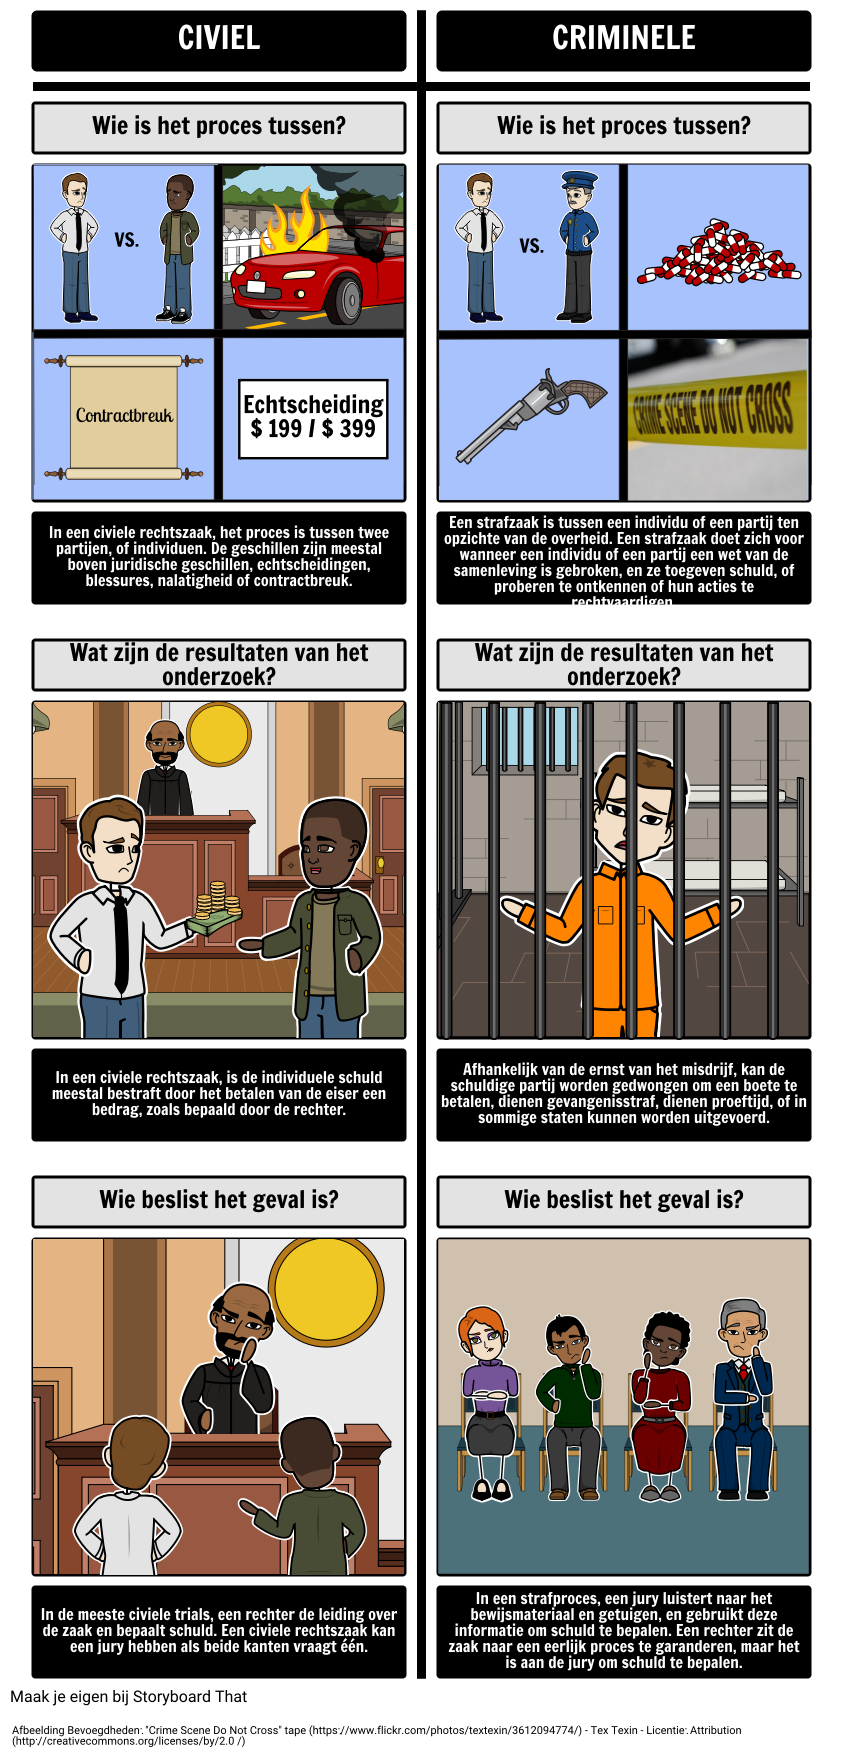 Civil vs. Criminal Trials